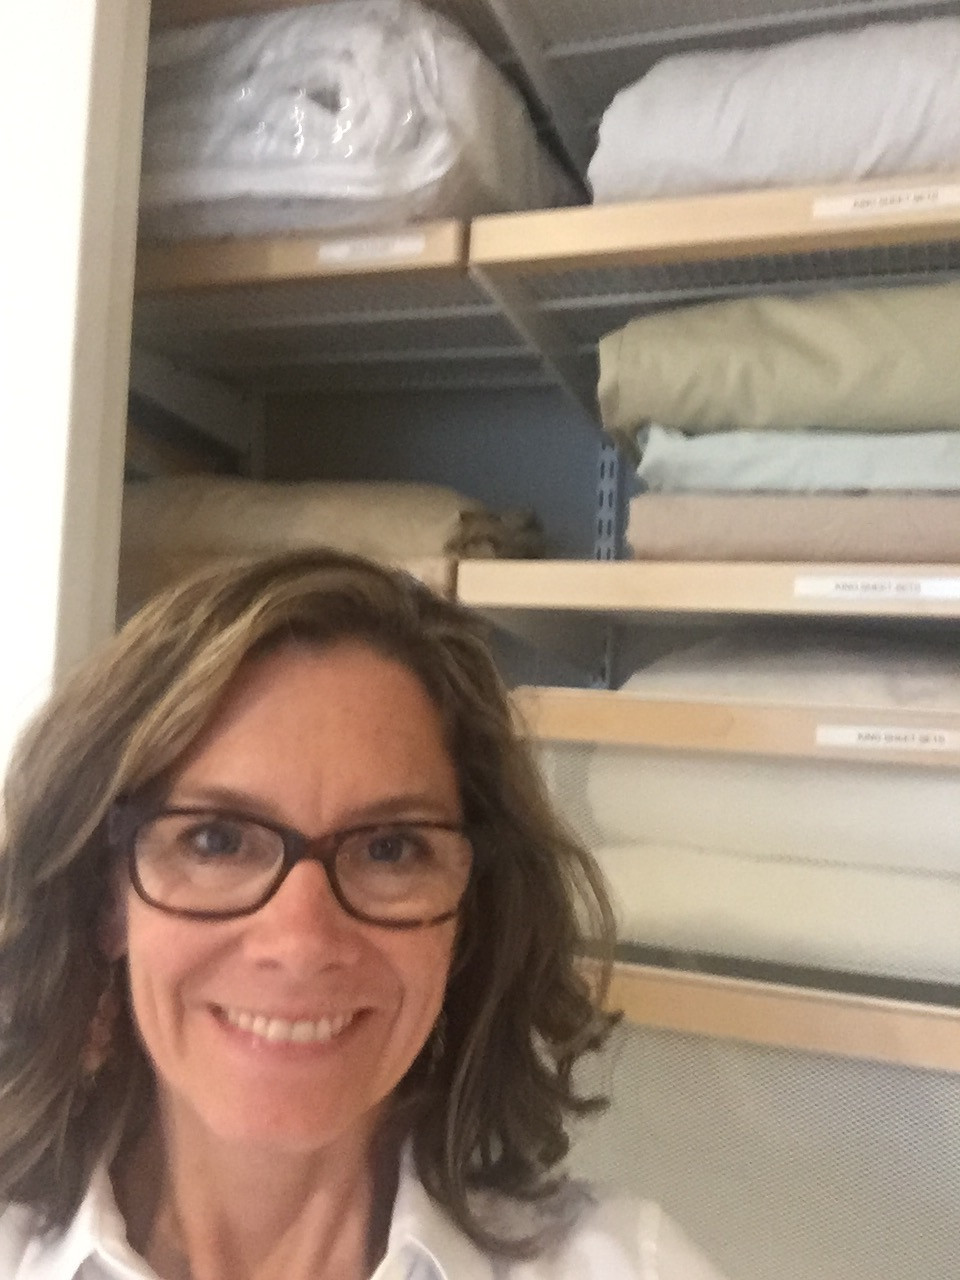 Heather in front of client's newly-labeled and organized Elfa linen closet solution